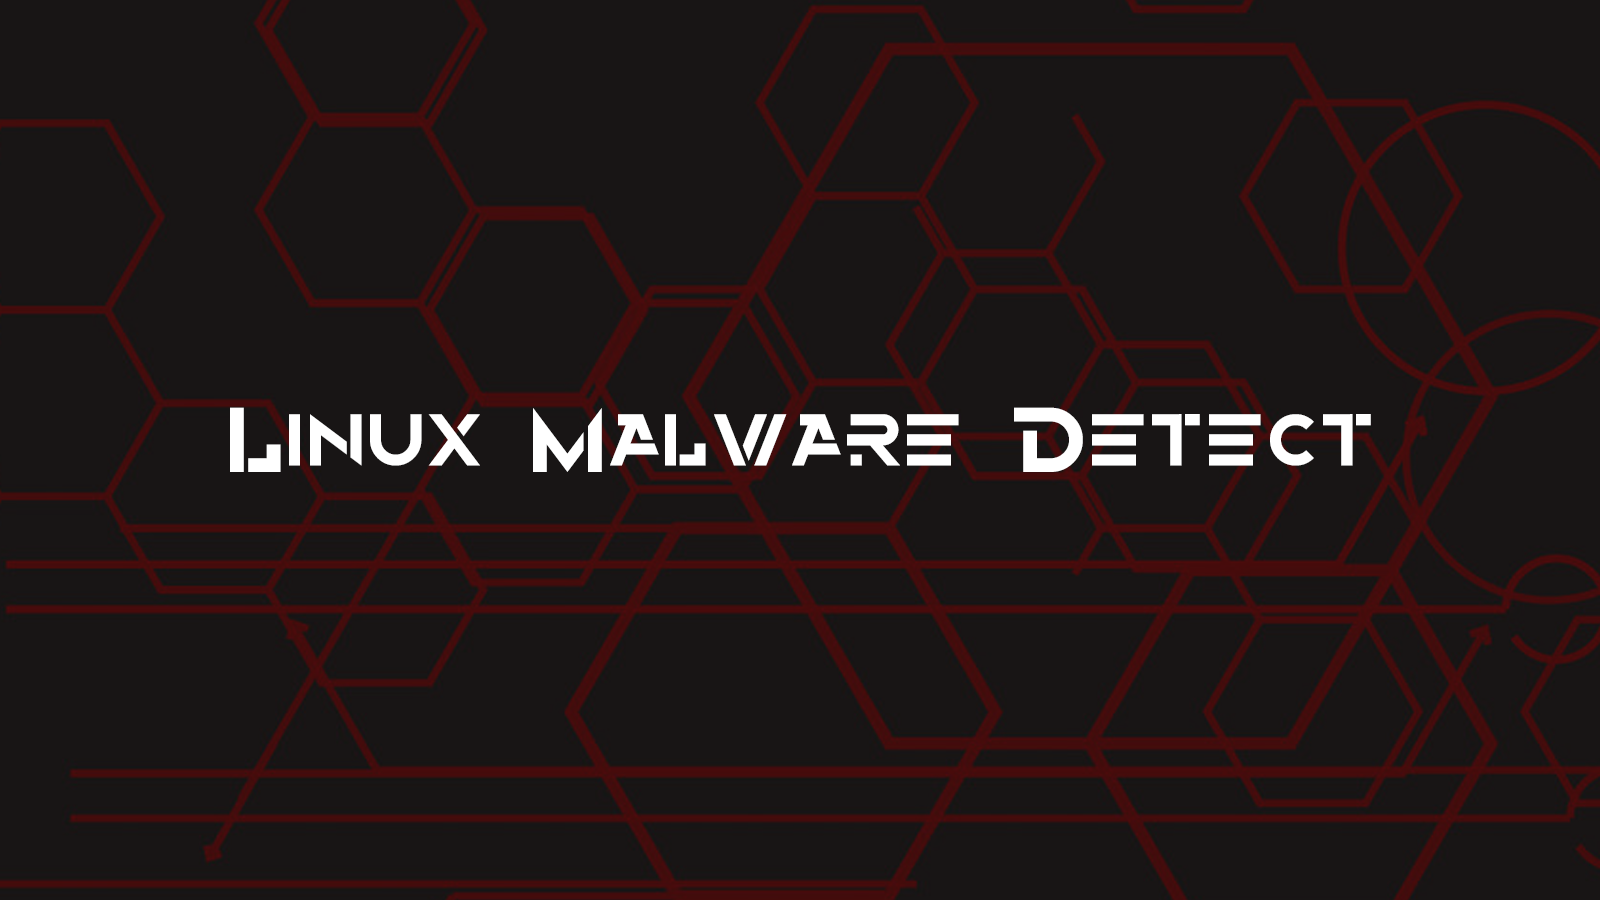 Linux Malware Detect - Malware Scanner for Linux